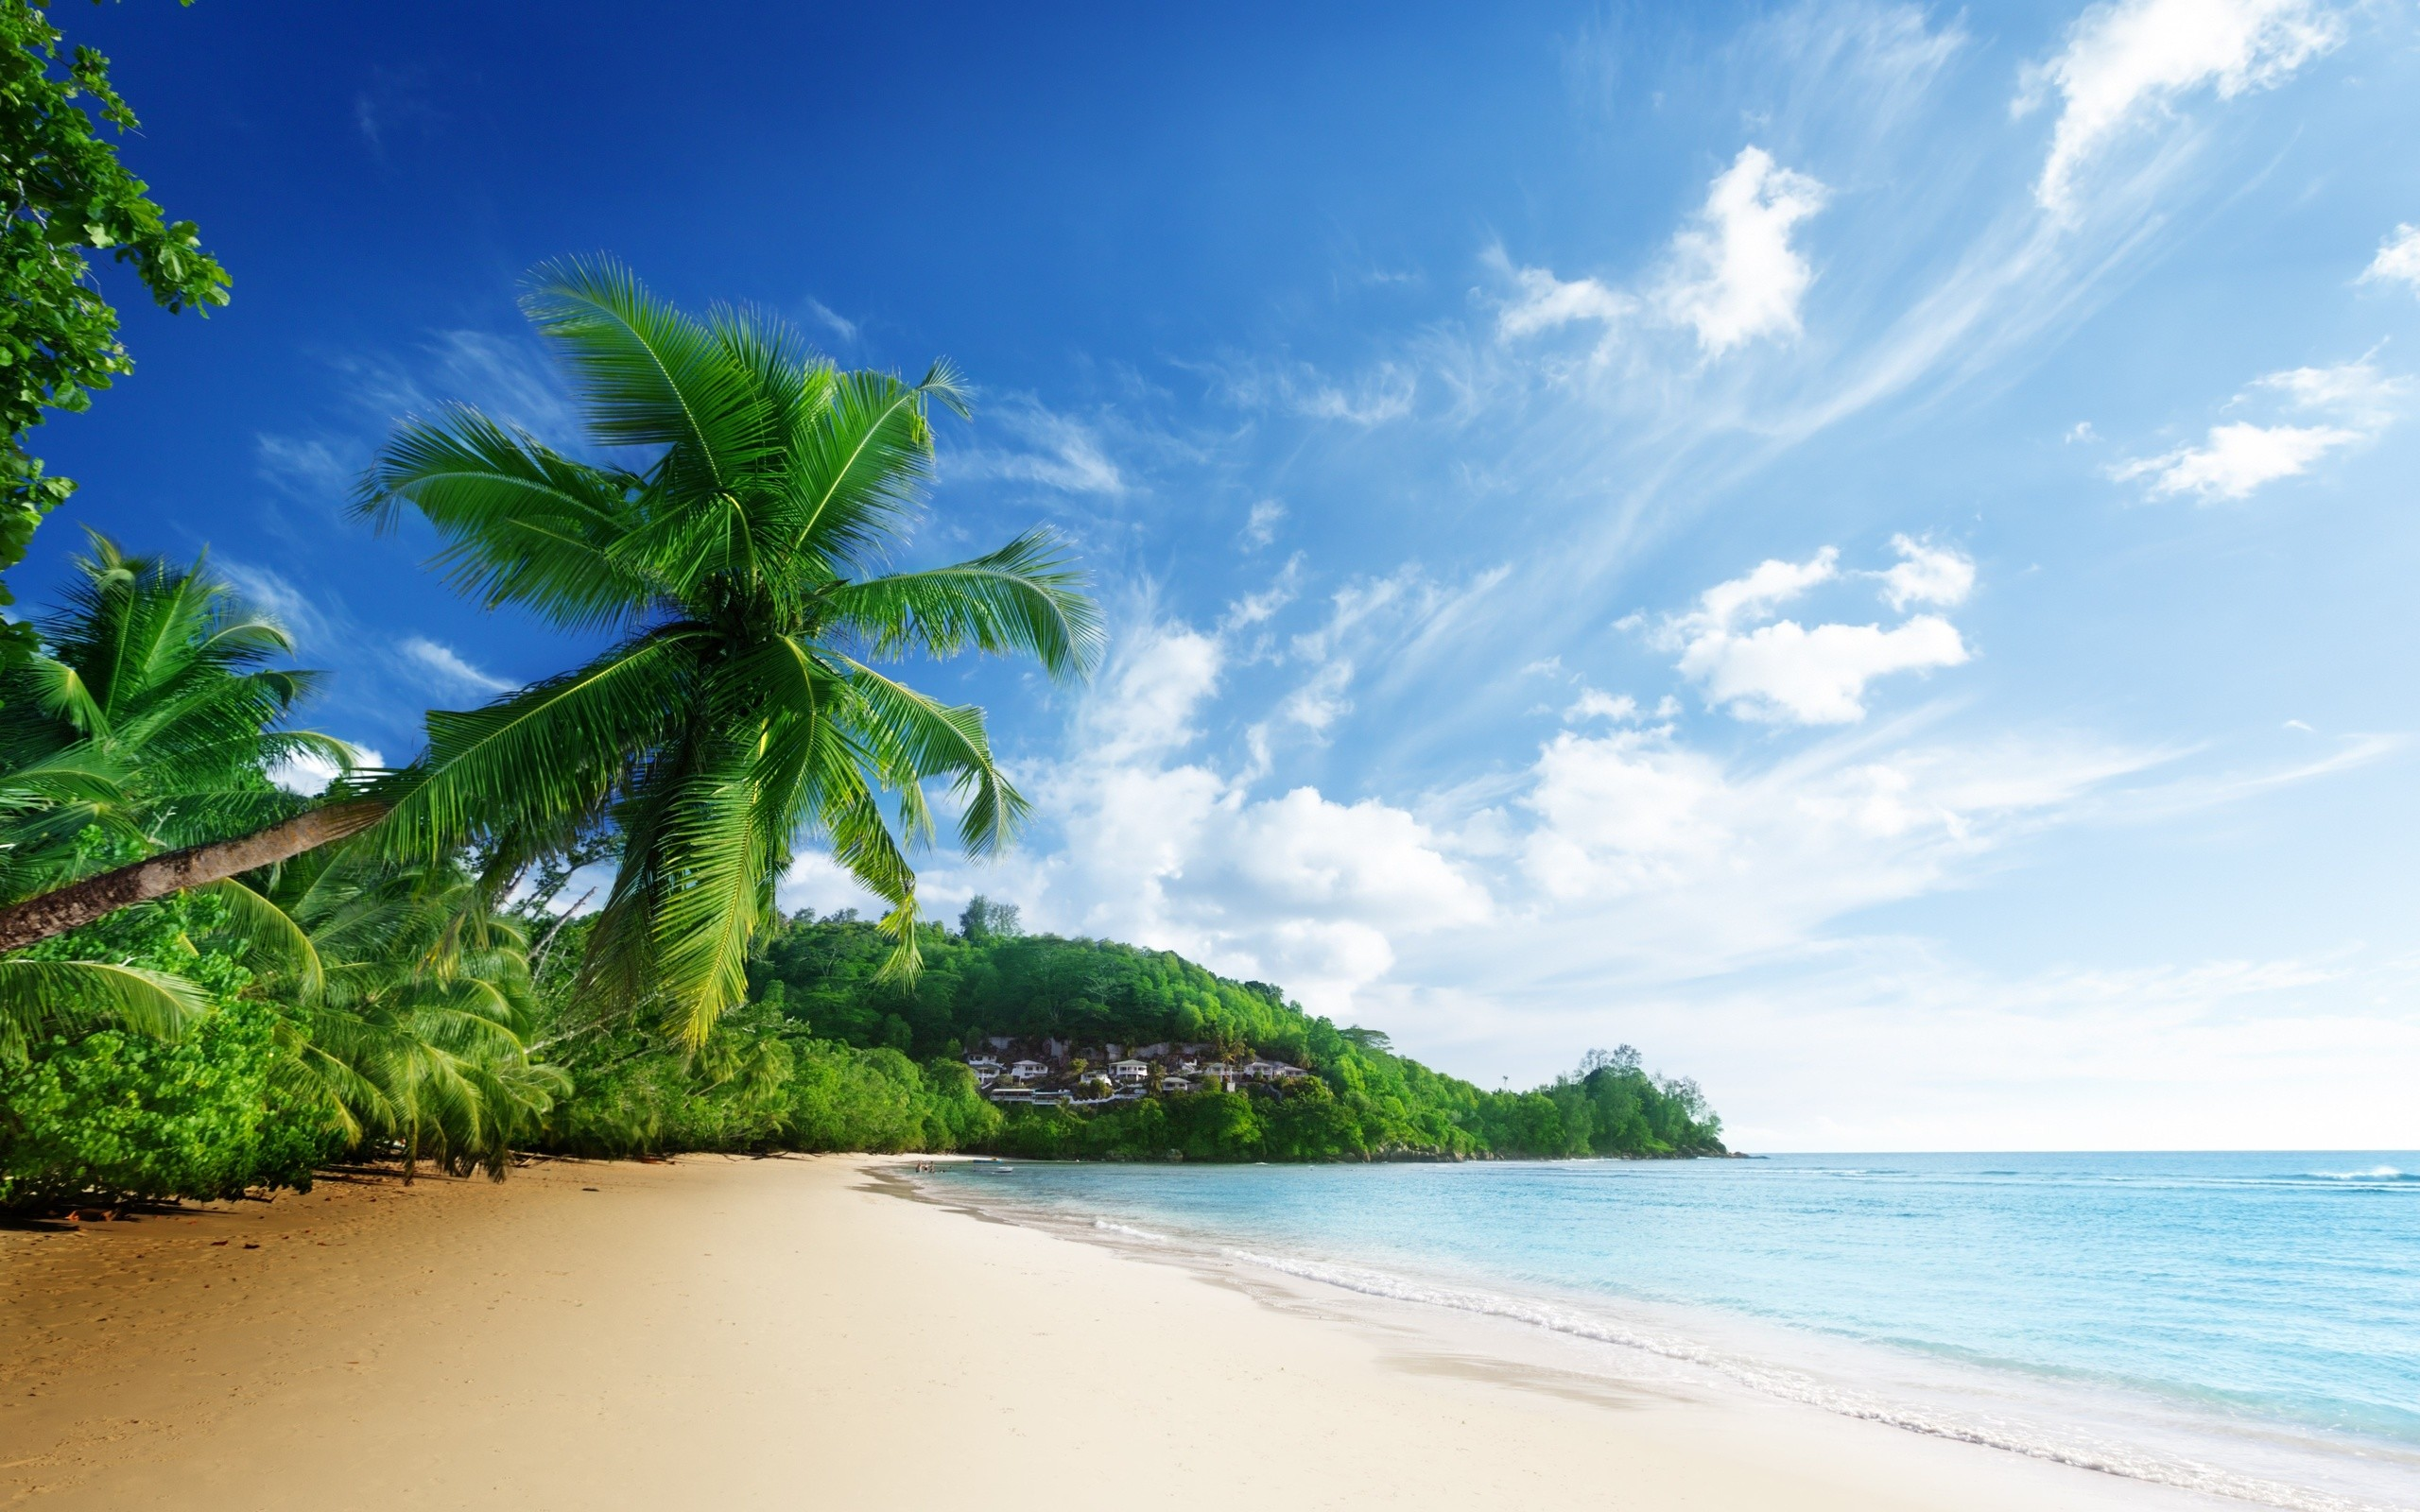 2560x1600 High Resolution Awesome Beach Desktop Wallpaper High Resolution Full .